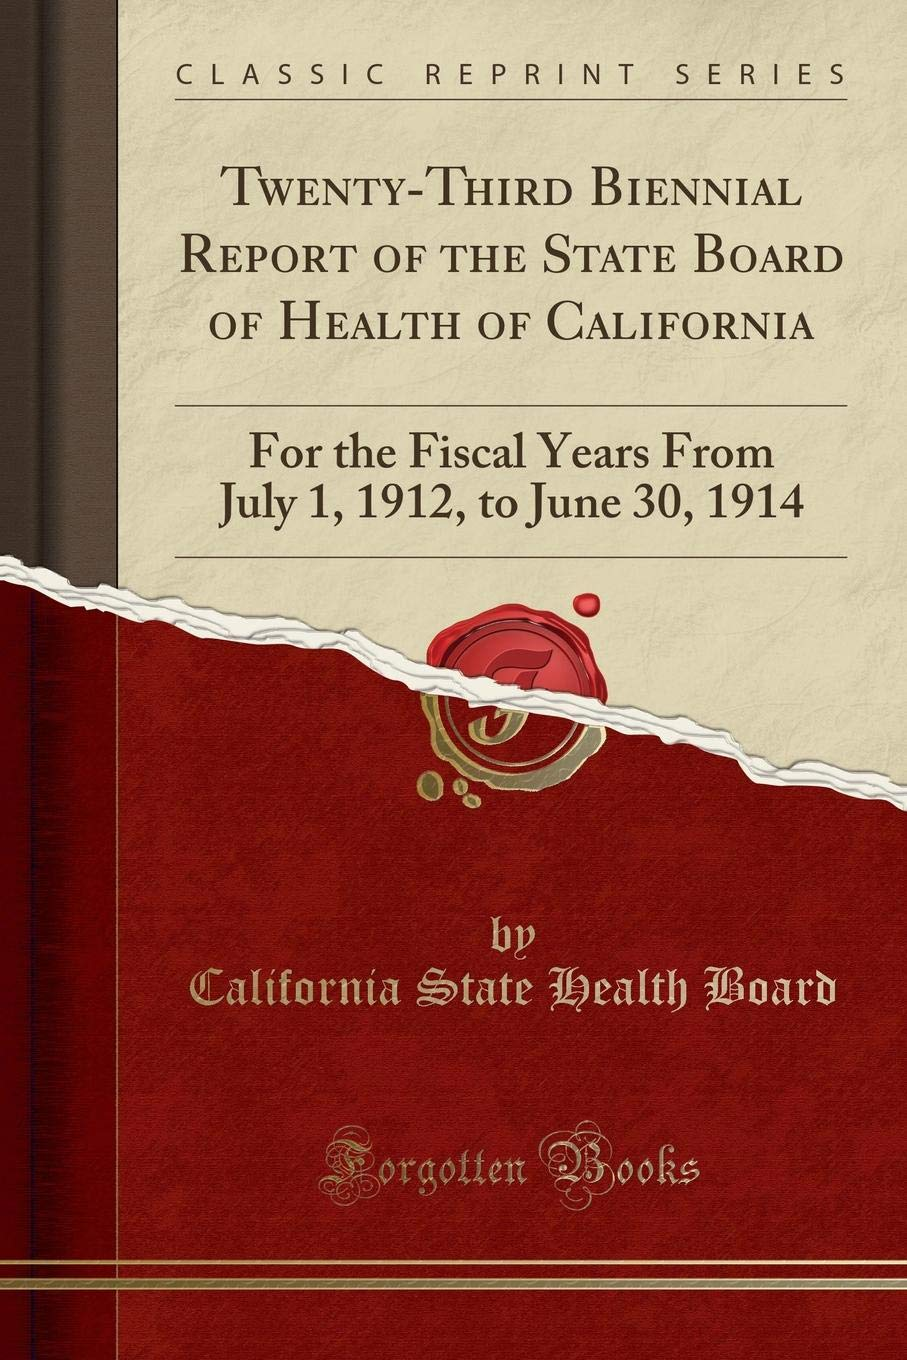 Twenty-Third Biennial Report of the State Board of Health of California: For the Fiscal Years From July 1, 1912, to June 30, 1914 (Classic Reprint) pdf